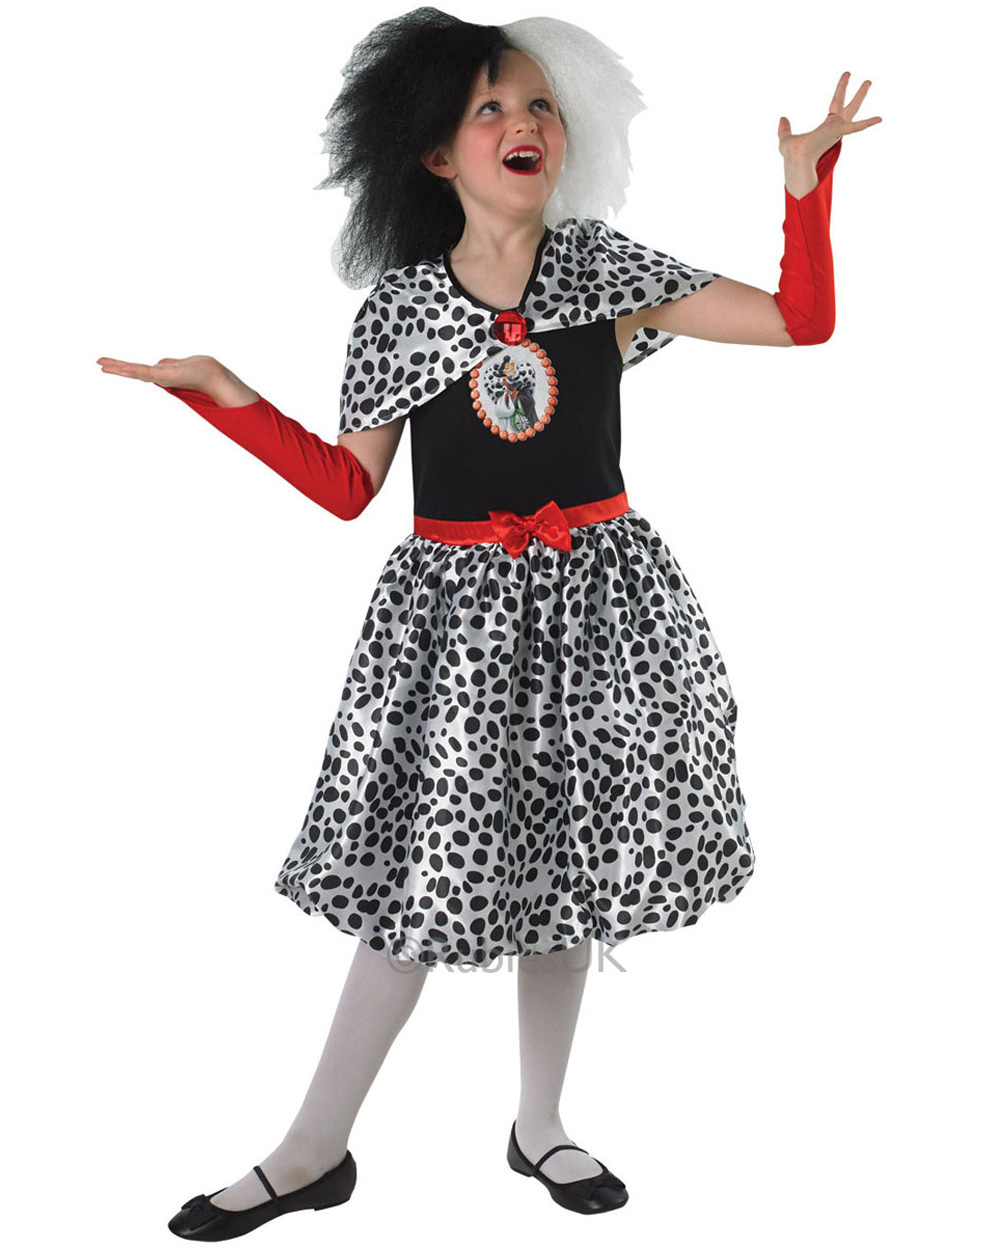 ck349 cruella de ville 101 dalmations villain tween girls fancy dress up costume ebay. Black Bedroom Furniture Sets. Home Design Ideas